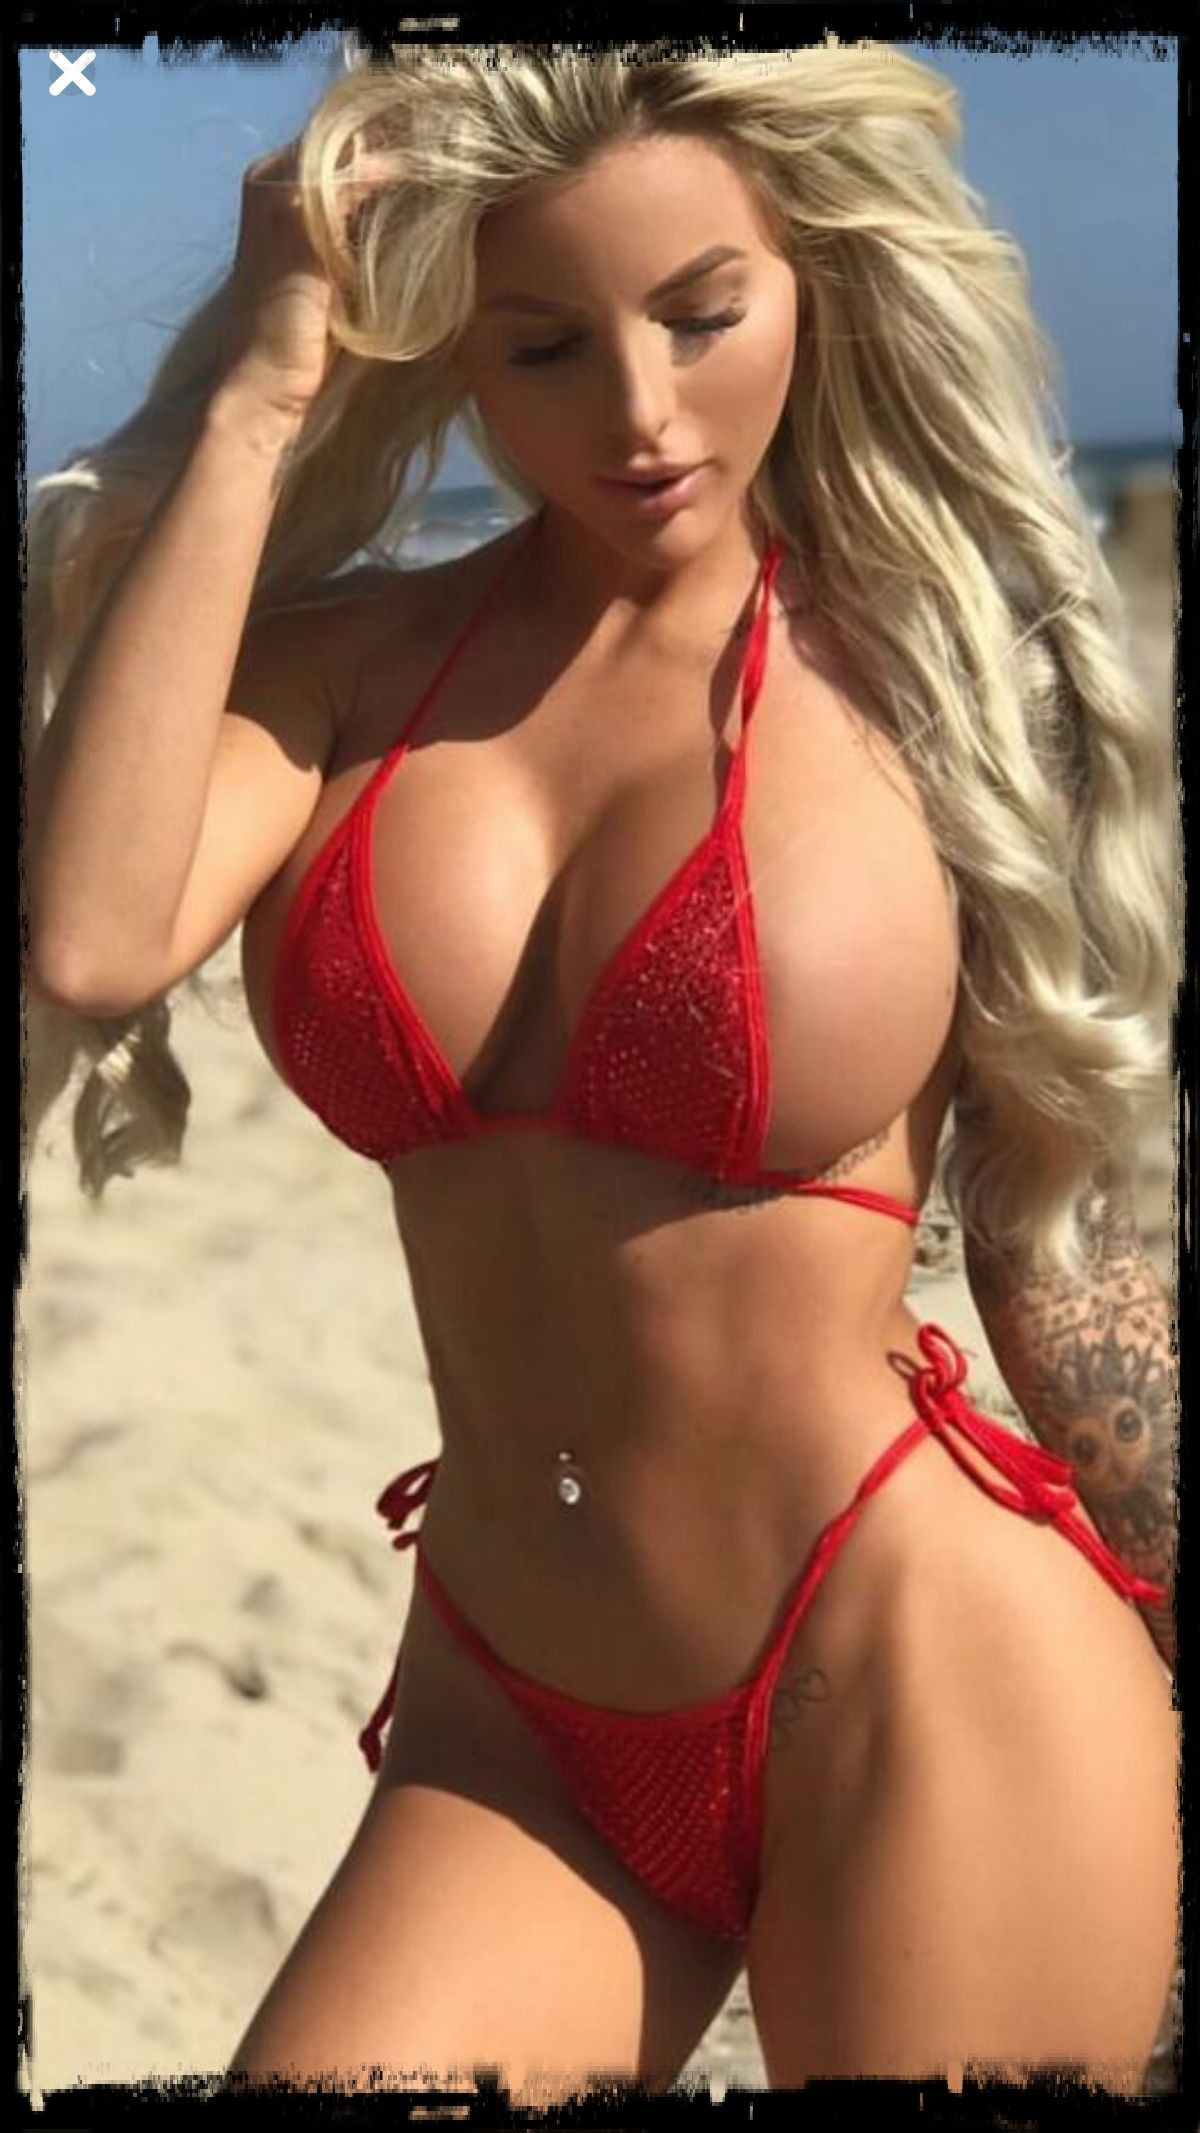 Adara michaels bikini Fotos